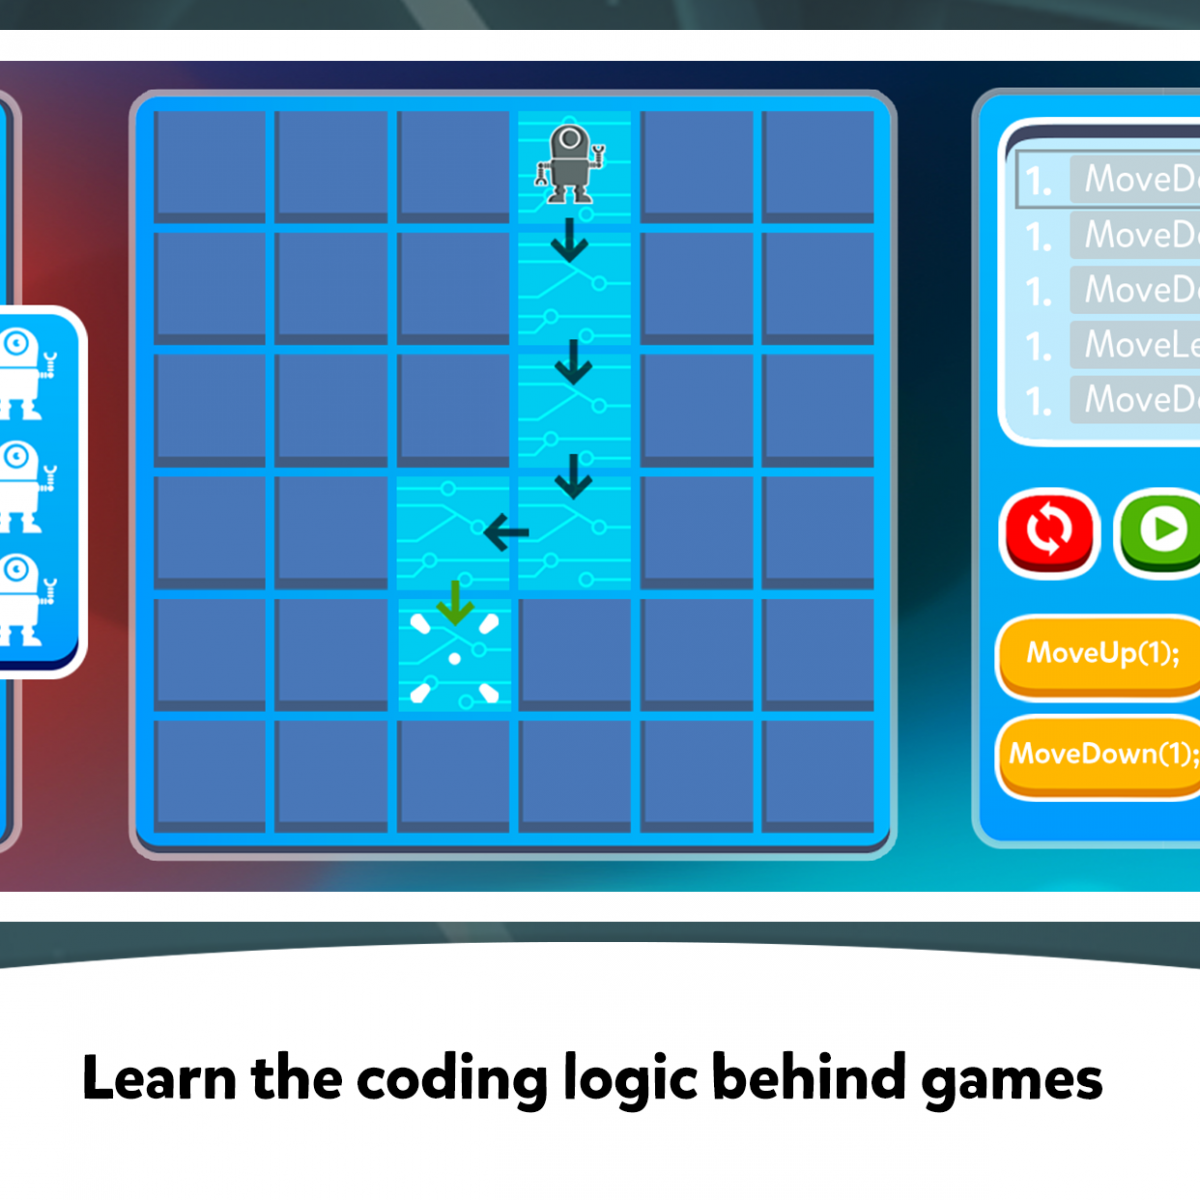 SKIDOS - Learn the coding logic behind games